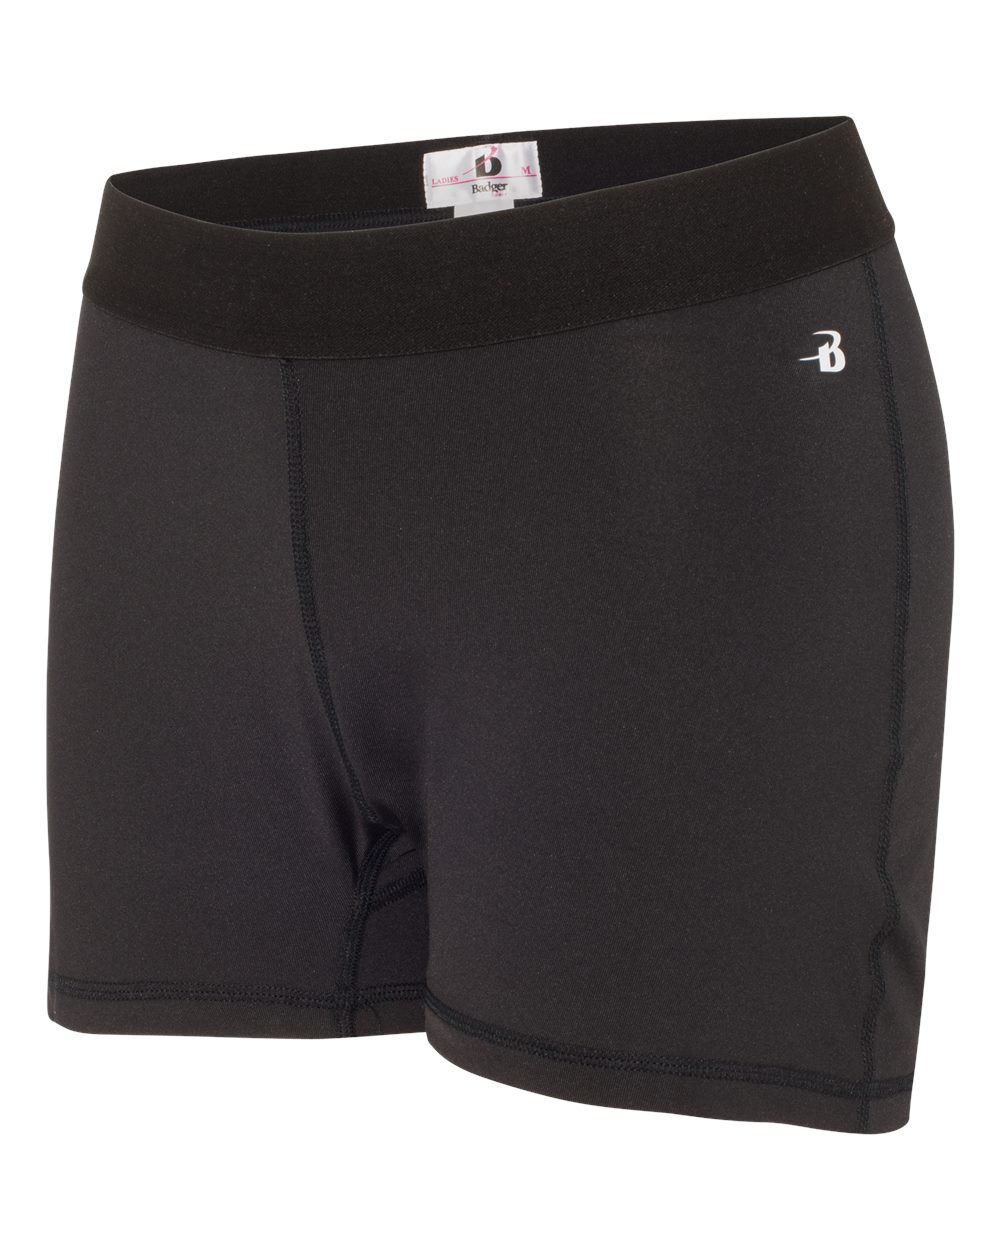 Badger 4629 - Pro-Compression Women's Shorts